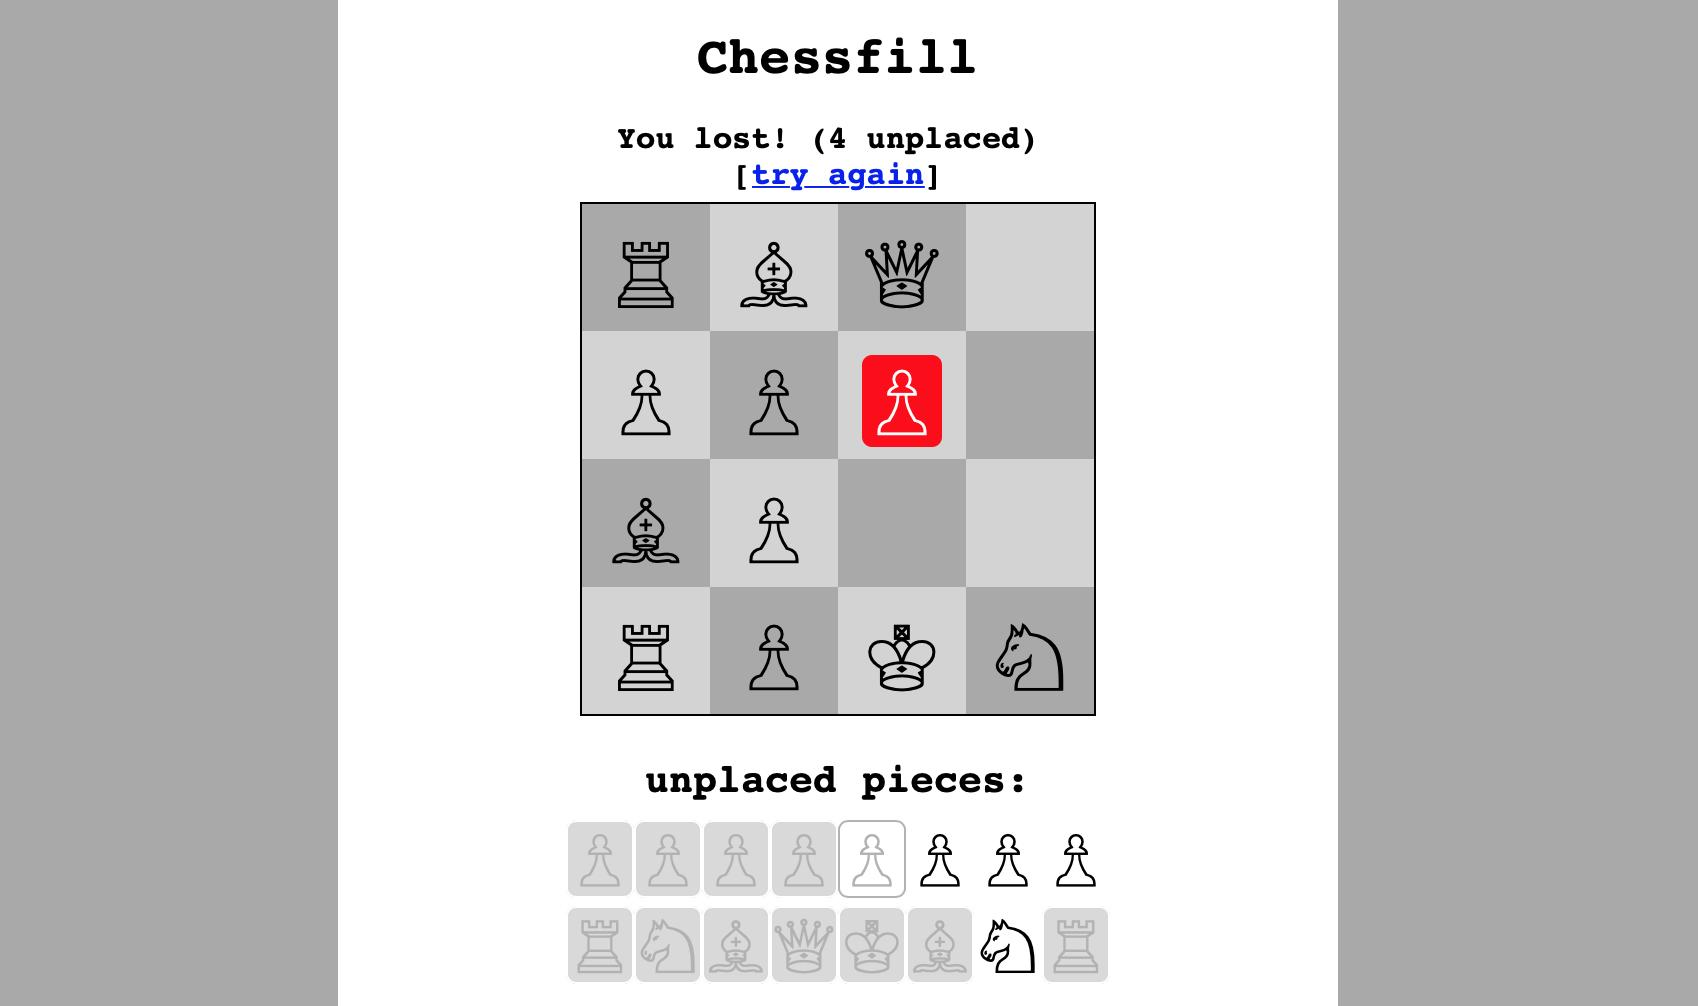 Chessfill